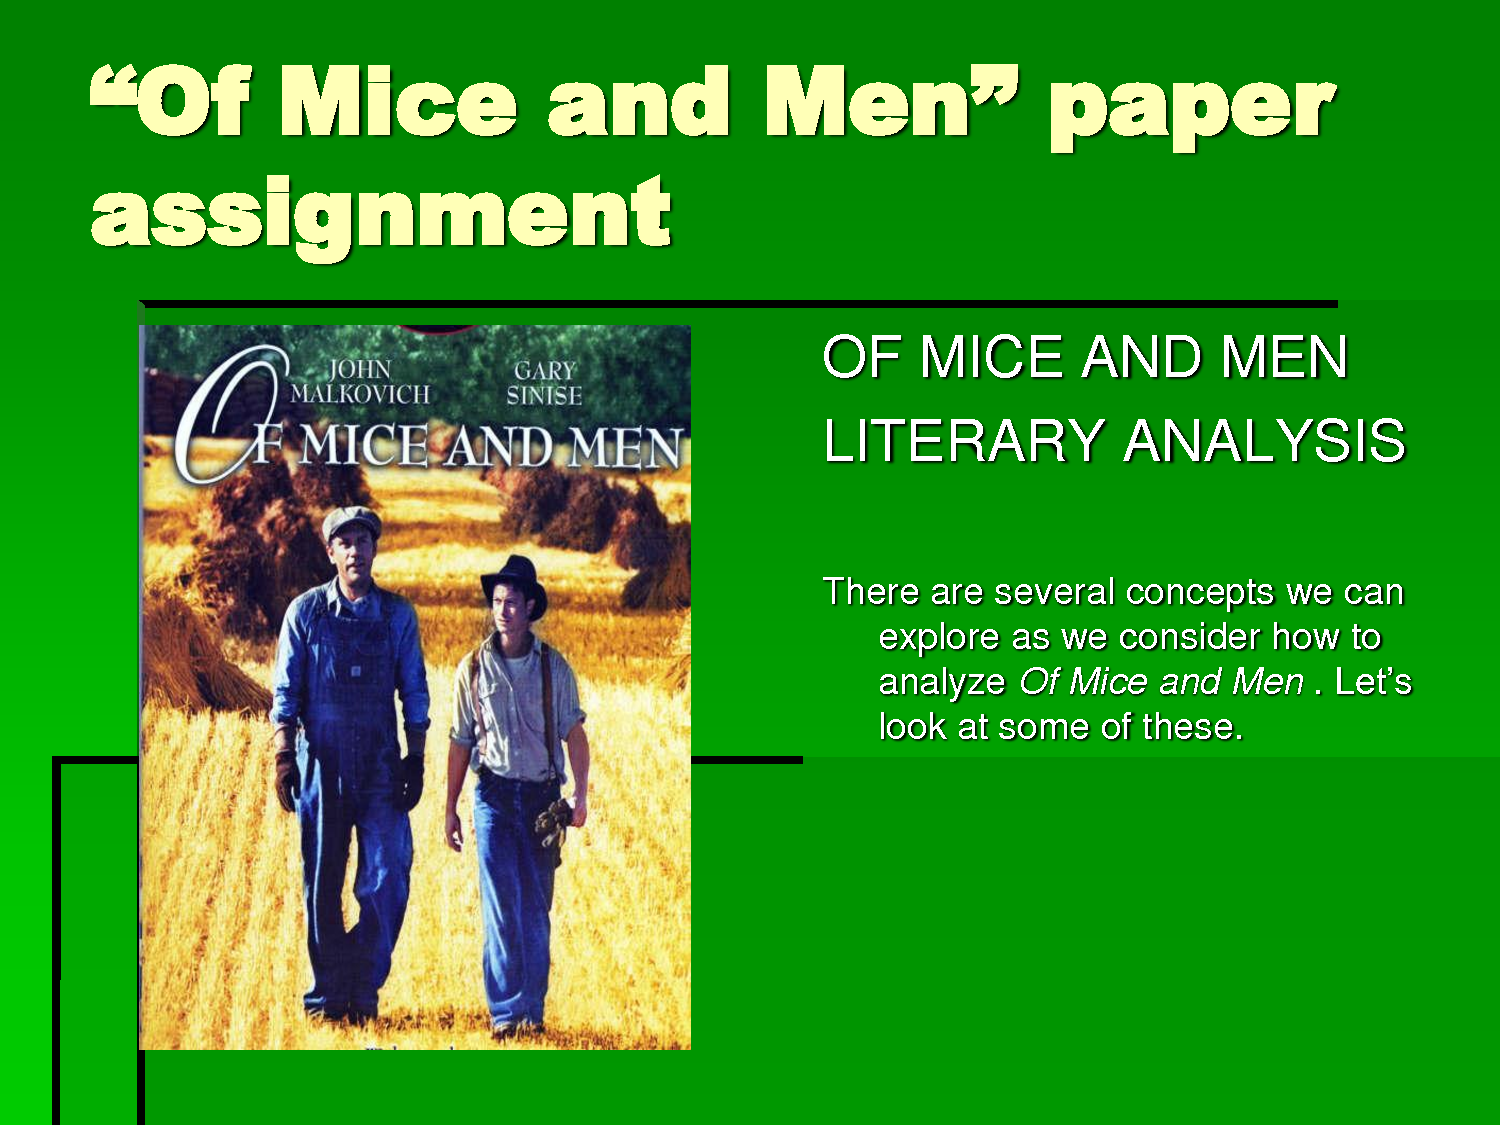 friendship quotes of mice and men book quotesgram friendship quotes of mice and men book